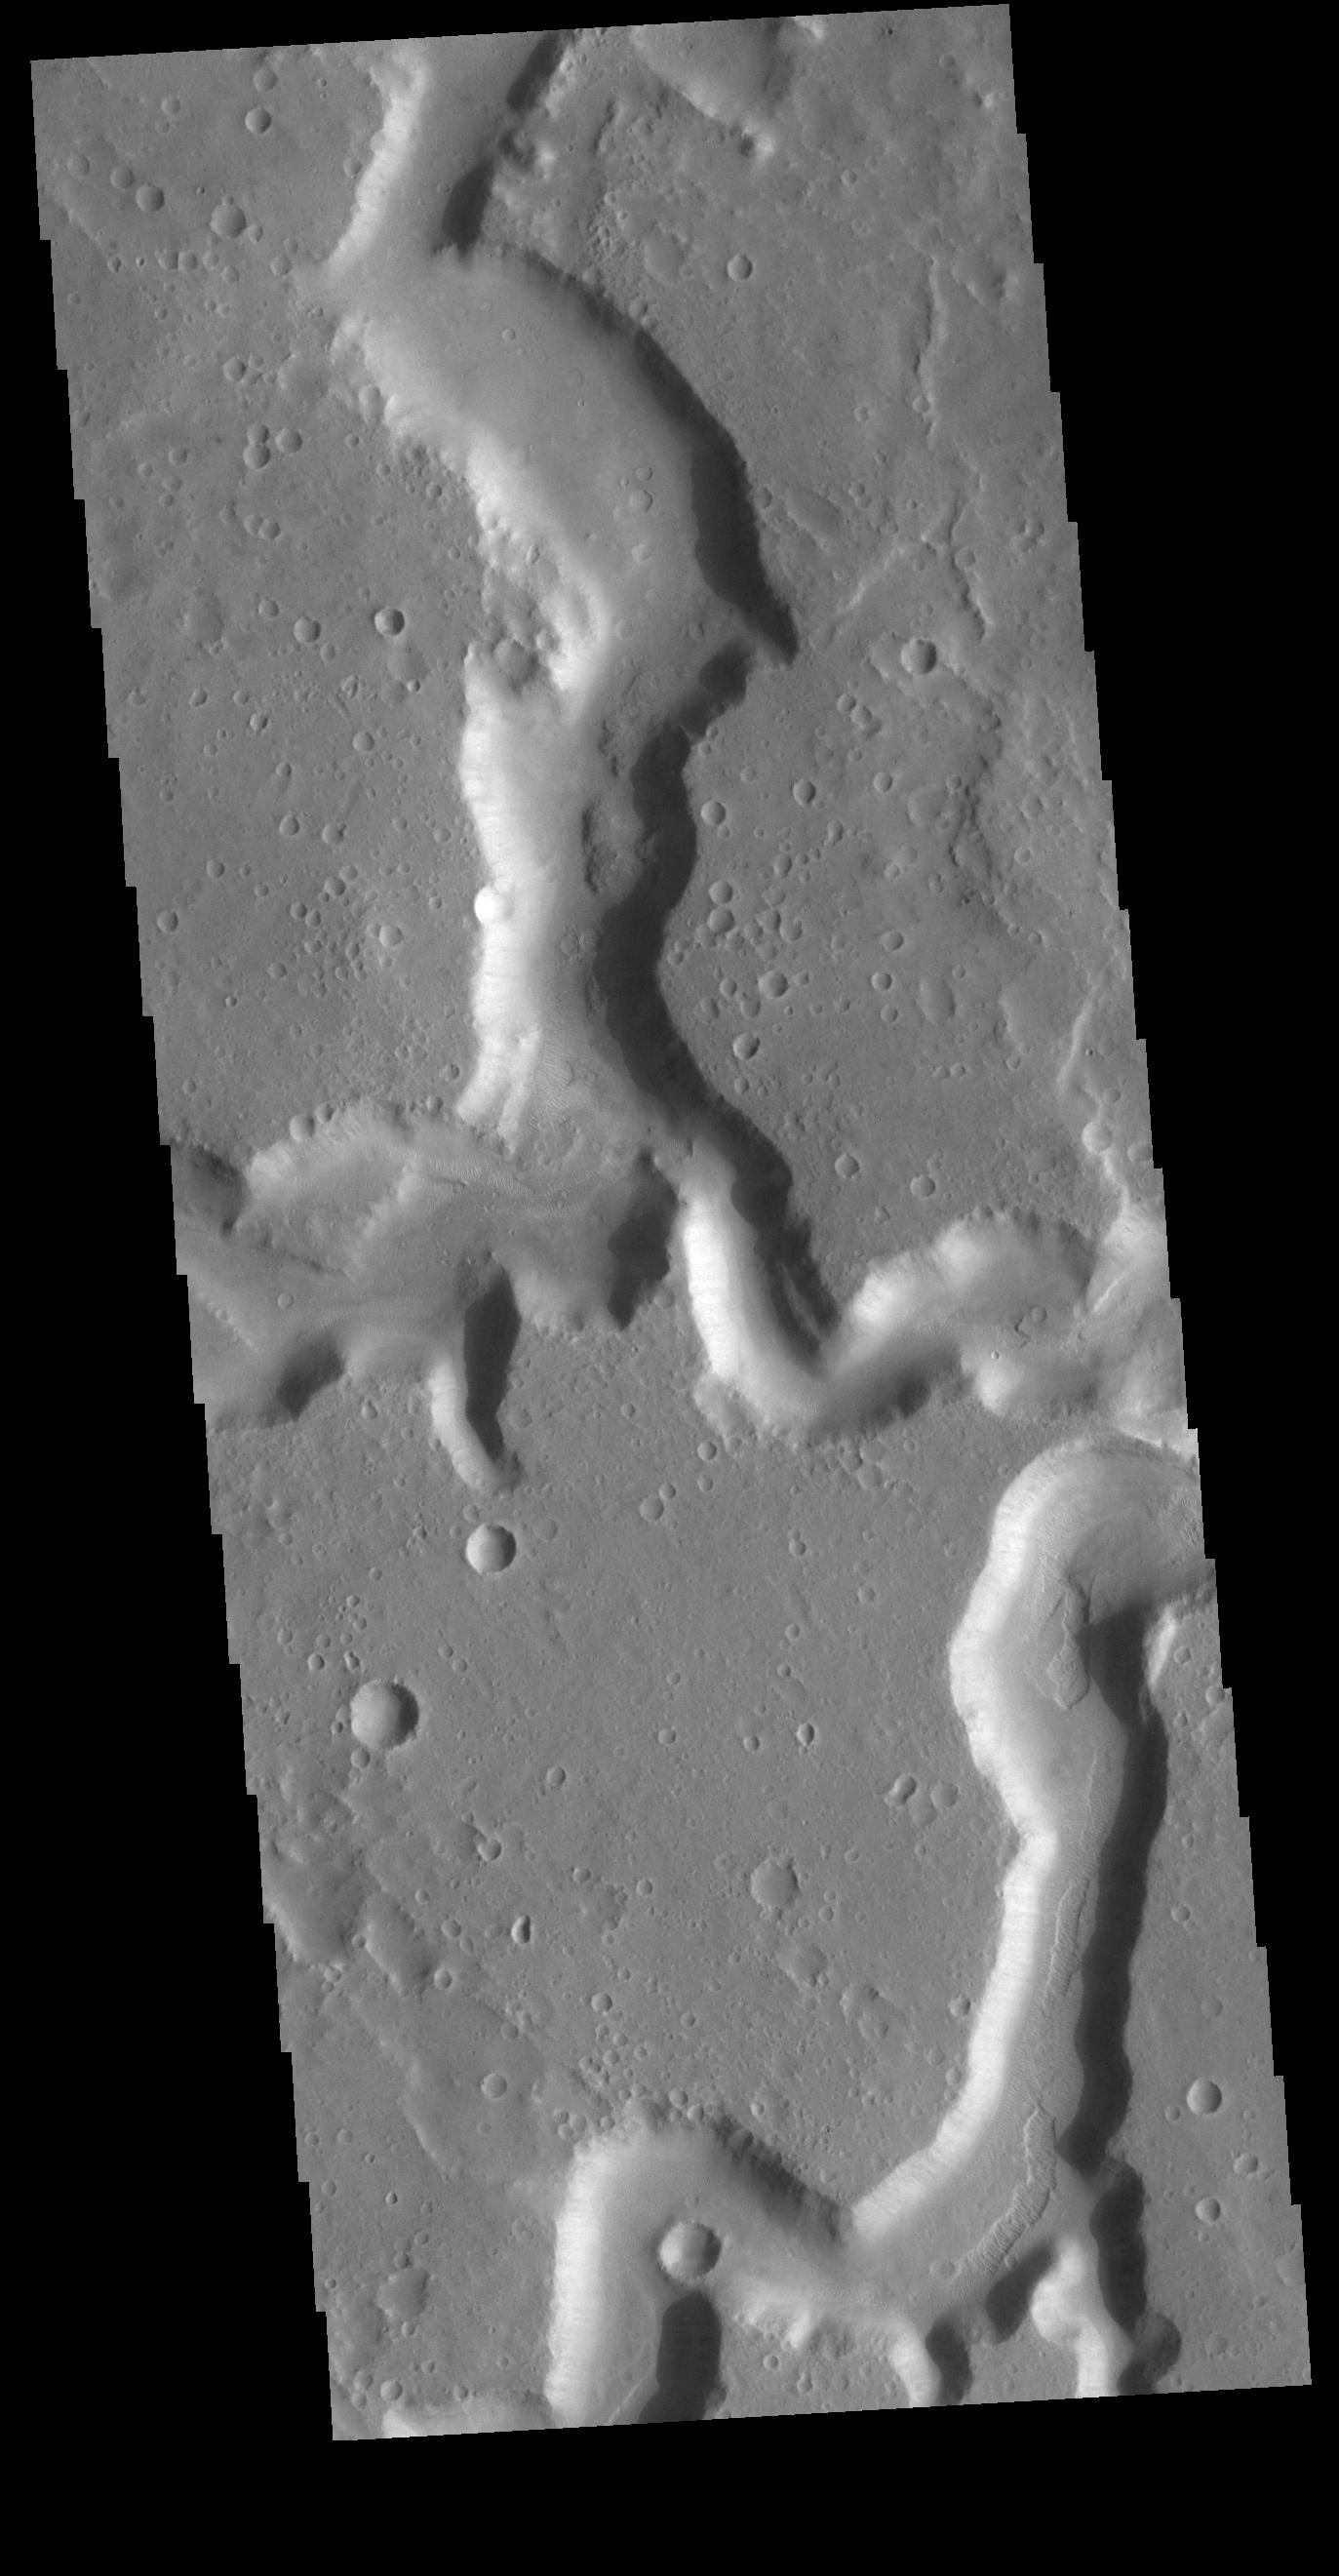 This image from NASAs Mars Odyssey shows the confluence of the two main channels of Nanedi Valles.